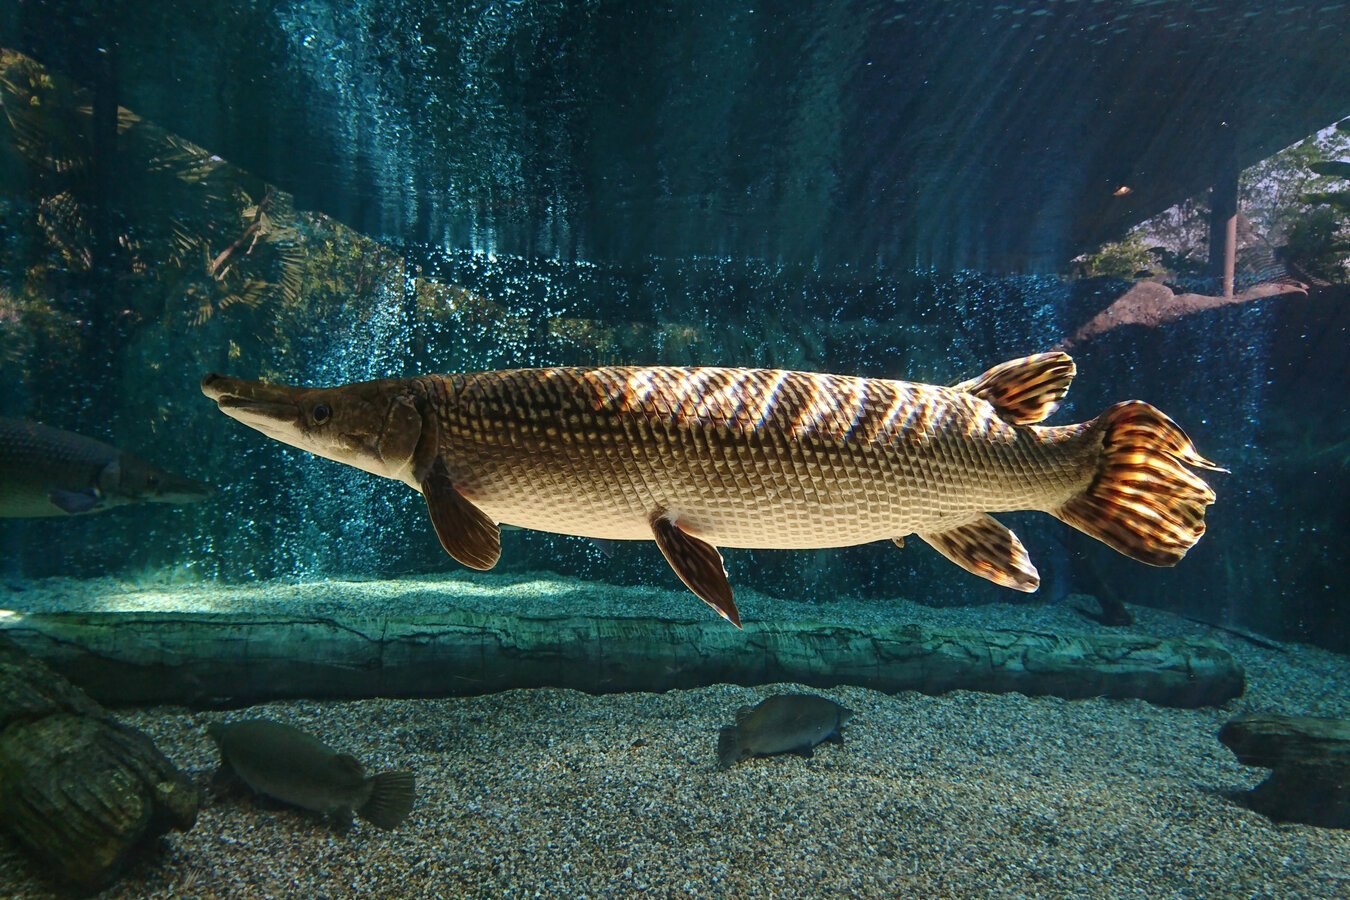 An Alligator Gar swimming in freshwater with sun rays, plants, and water bubbles in the back of the picture